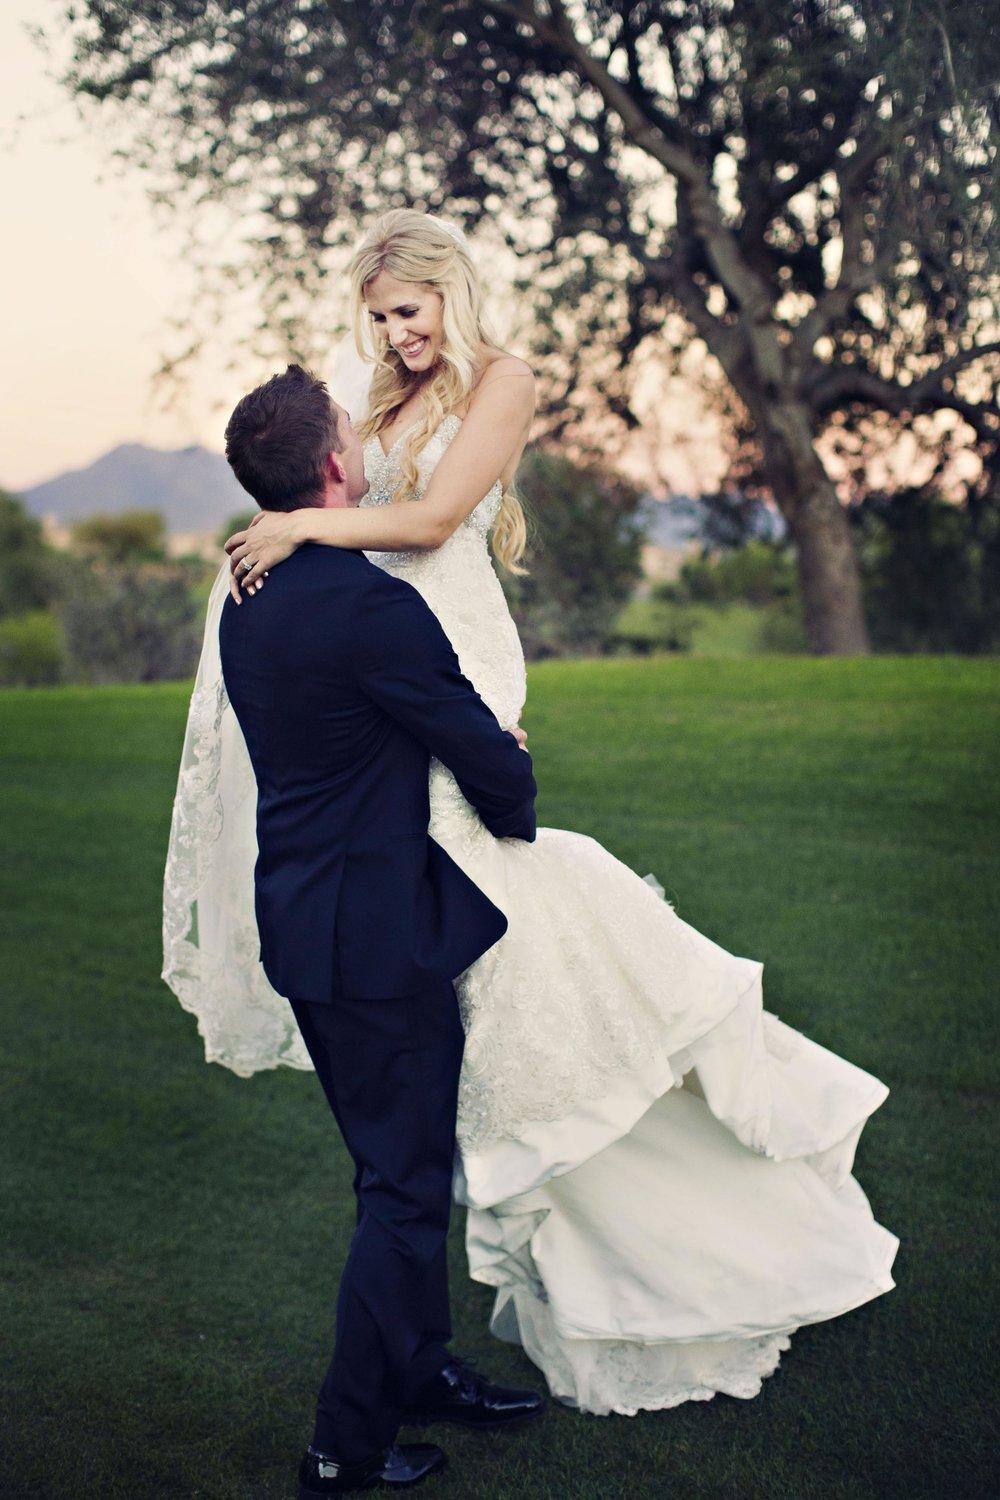 weddings-scottsdale-26.JPG